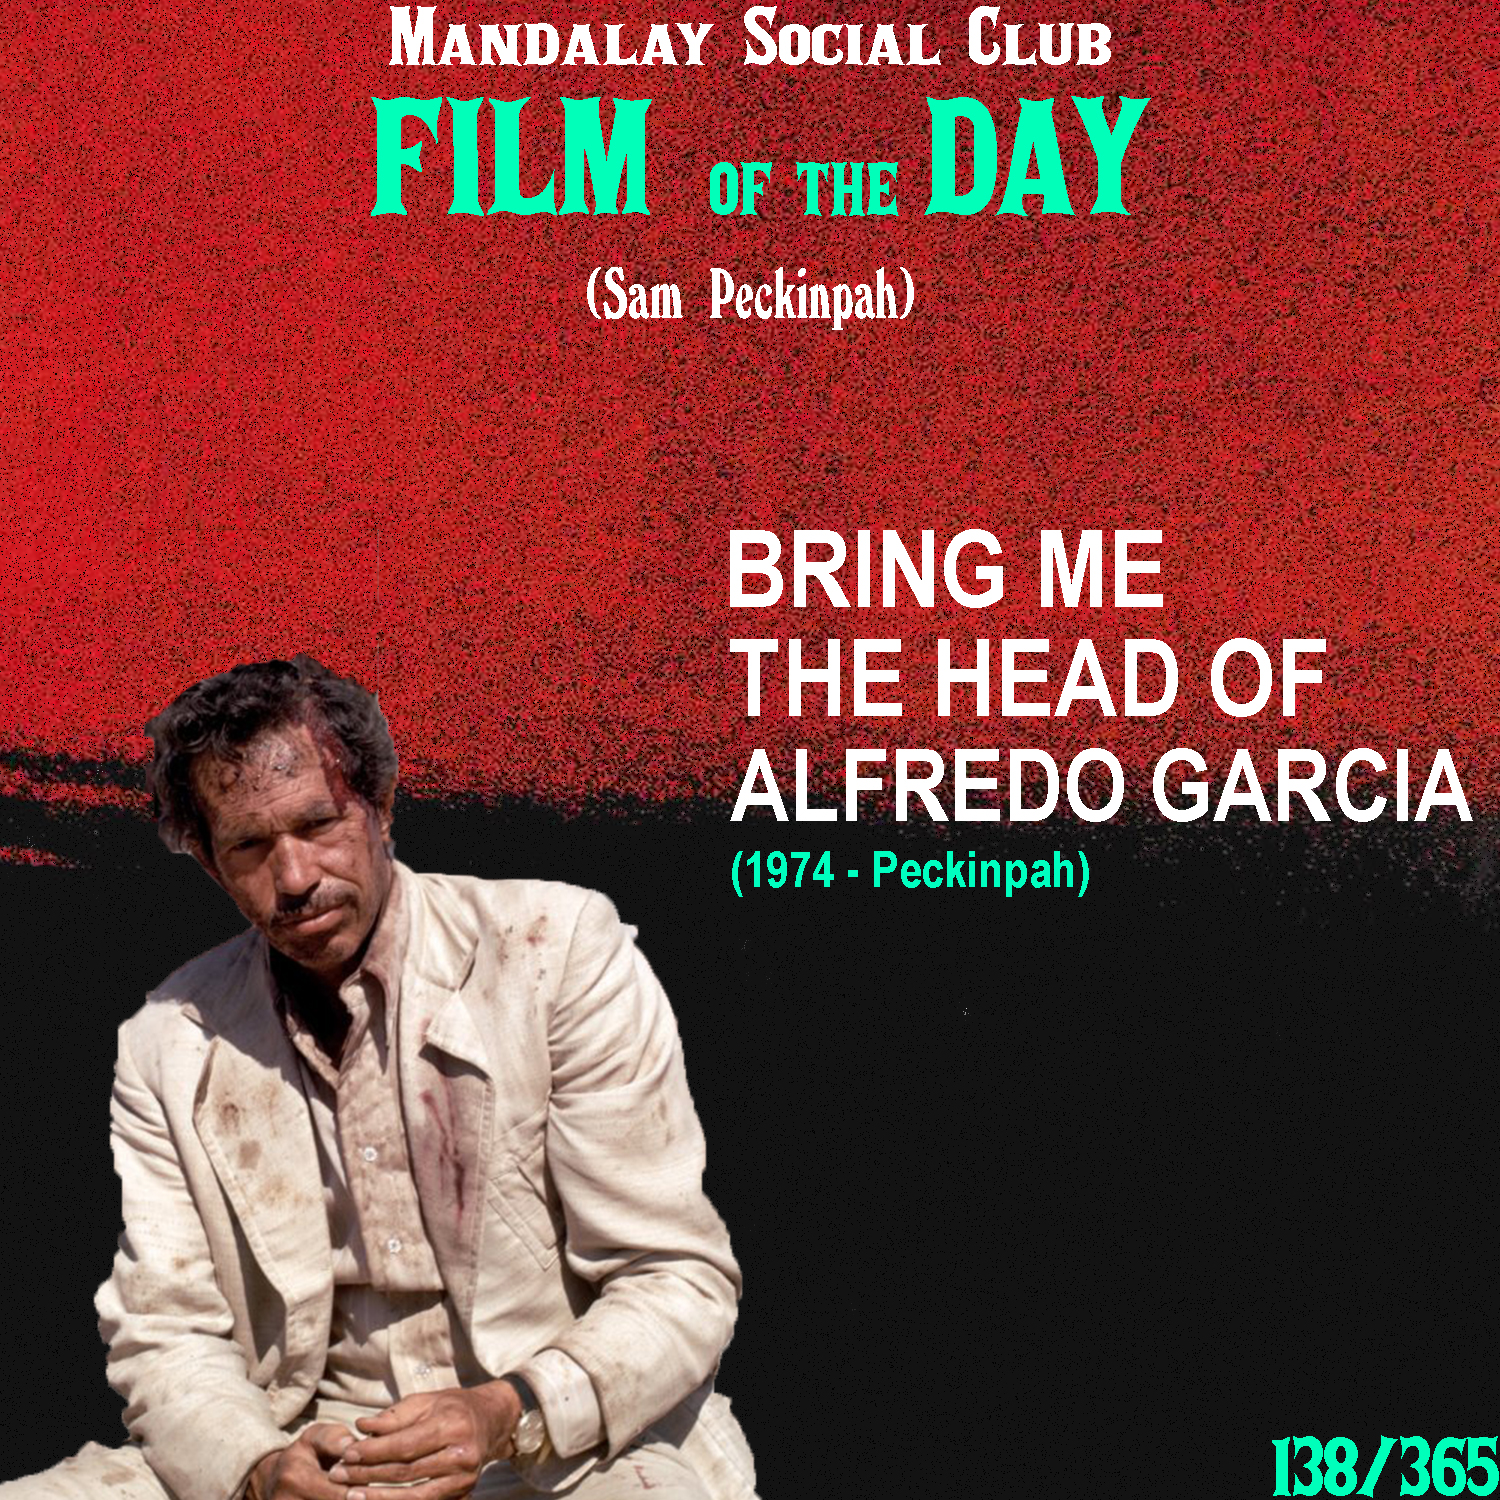 BRING ME THE HEAD OF ALFREDO GARCIA     (dir. Sam Peckinpah)   Right next to  The Wild Bunch ,  Bring Me the Head of Alfredo Garcia  stands up as one of Peckinpah's true masterpieces.  Warren Oates stars as Benny, an American that plays the piano in an American-run Mexican bar. While working, he's approached by a couple of bounty hunters who are looking for the head of a man named Alfredo Garcia, who impregnated the daughter of a Mexican crime lord. Benny claims to not know him, but decides to embark on the journey when he finds out Garcia has already been killed in a car accident. Eager to collect, Benny sets out to bring back Alfredo Garcia's head. But, it might cost him his own.  According to Peckinpah himself, this is the only film off his that was released just as he intended it. Meaning that the producers and financiers stayed out of the editing room and let Peckinpah do his thing.  Alfredo Garcia  was filmed on a pretty low budget, thus allowing Peckinpah full creative control. It's filled with all the classic Peckinpah traits that have highlighted his career up to this point, but this time it's done with an unfaltering sense of vision from Bloody Sam himself.  Bring Me the Head of Alfredo Garcia  is not only one of the finest movies of the 1970s, but in my eyes, it is the  essential  Peckinpah film.    5/5     WATCH: Putlocker (FREE)